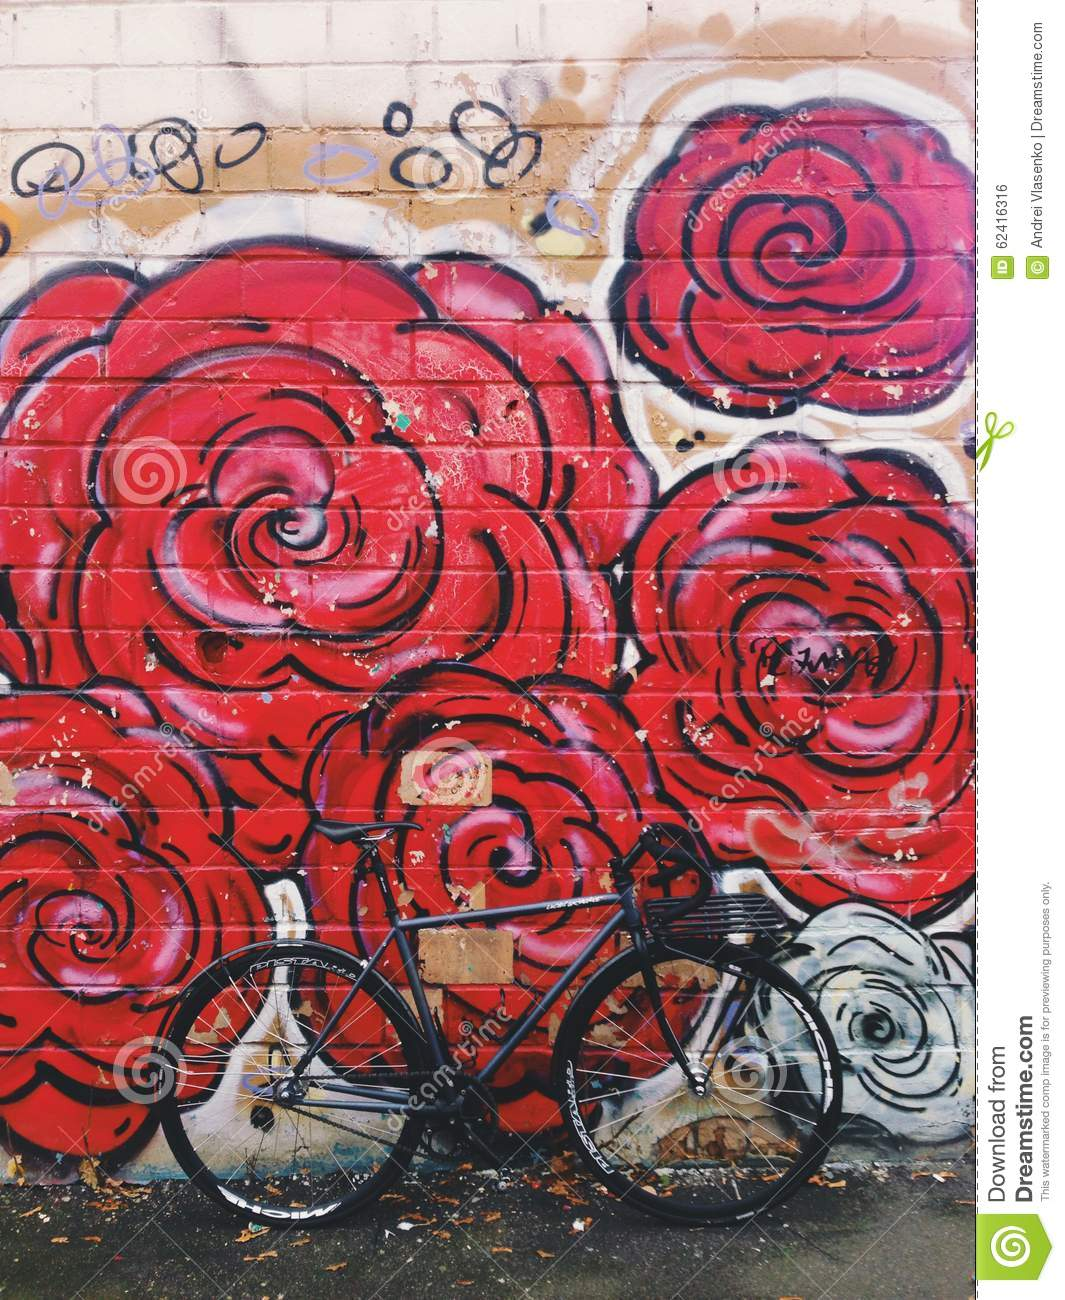 Grafiti wall red - Grey Black Fixie Bicycle In Front Of The Wall With Bright Red Flowers Graffiti